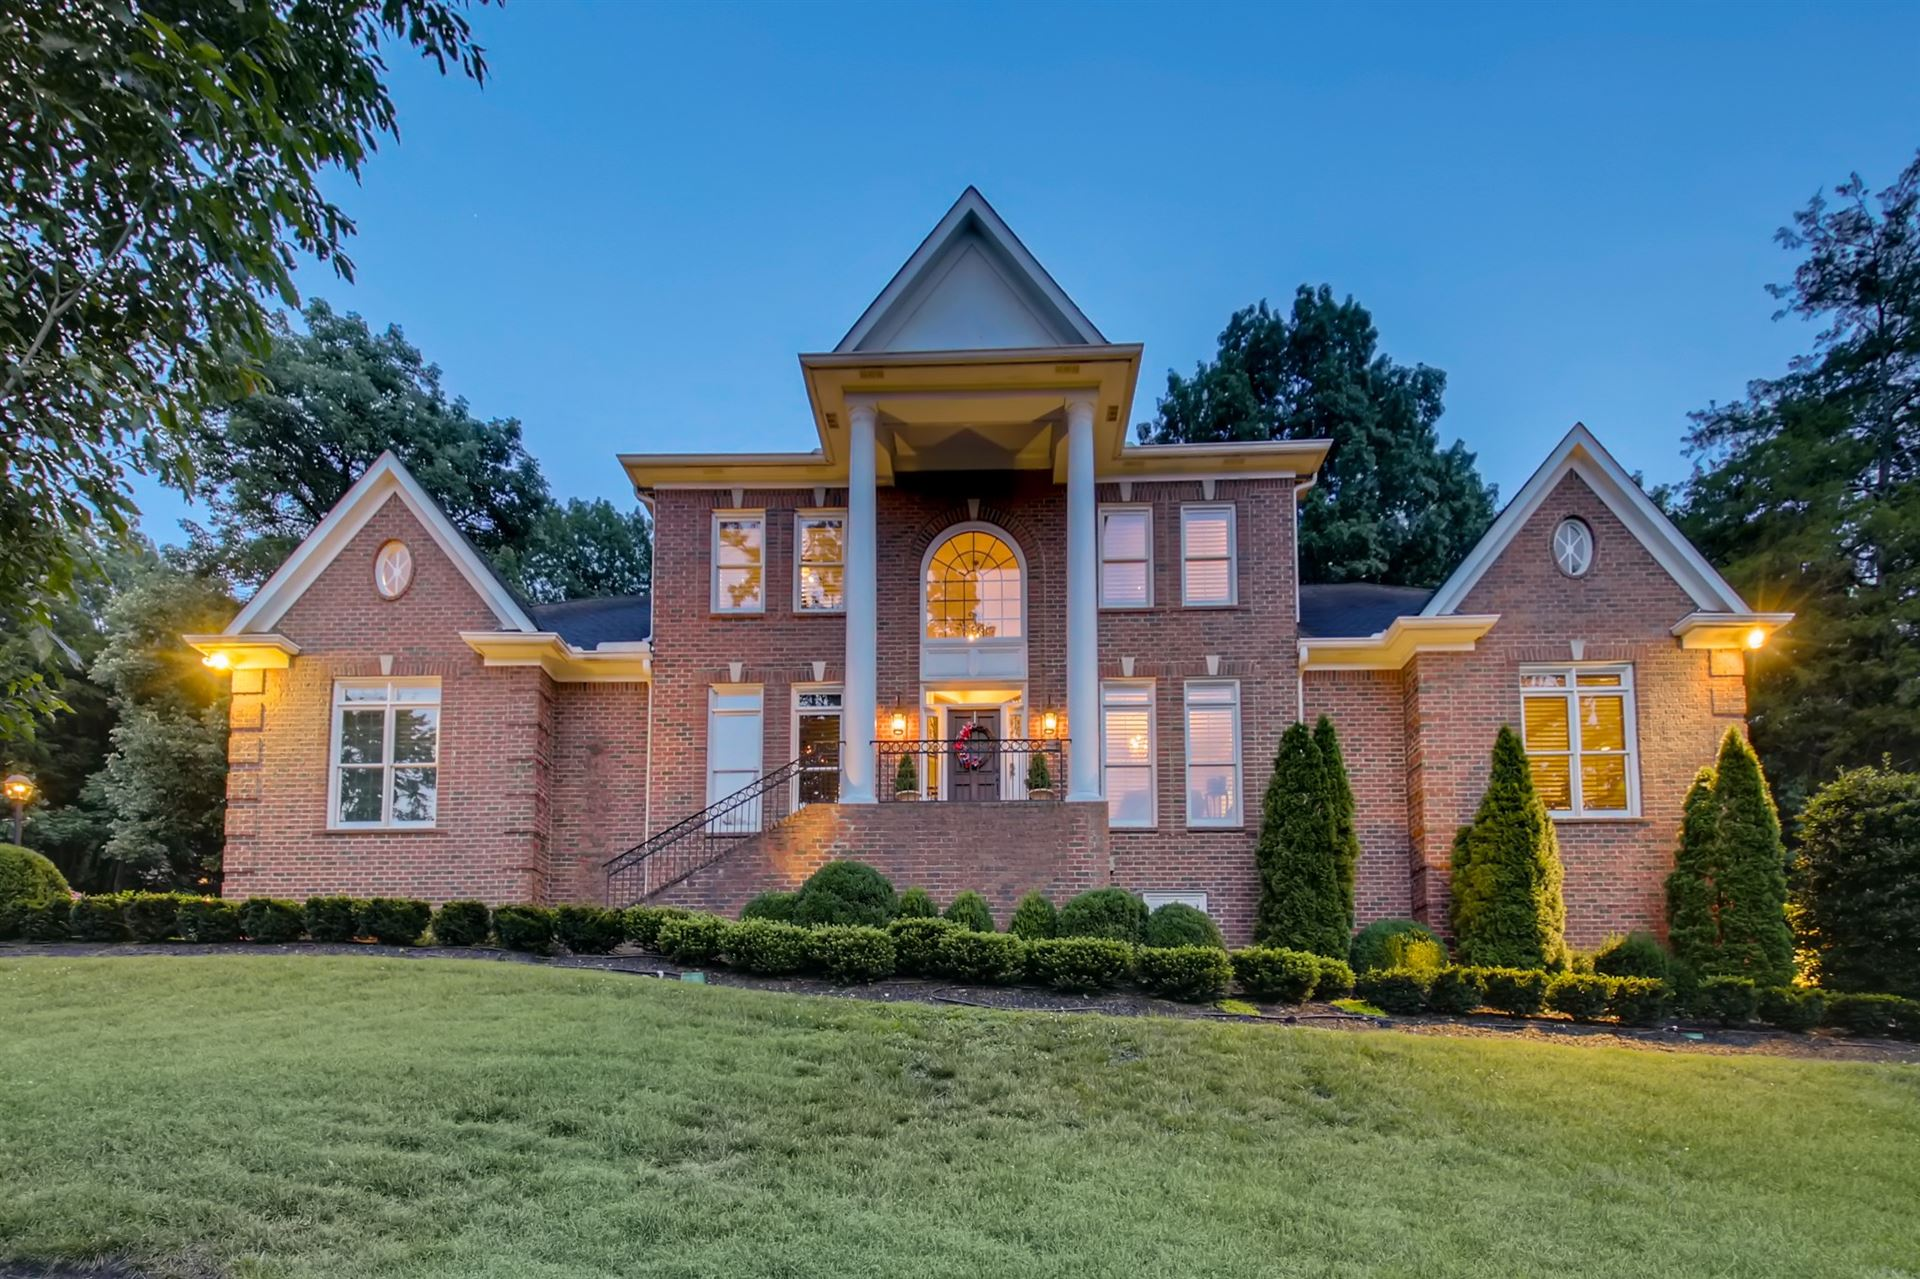 Photo of 6325 Wescates Ct, Brentwood, TN 37027 (MLS # 2166661)